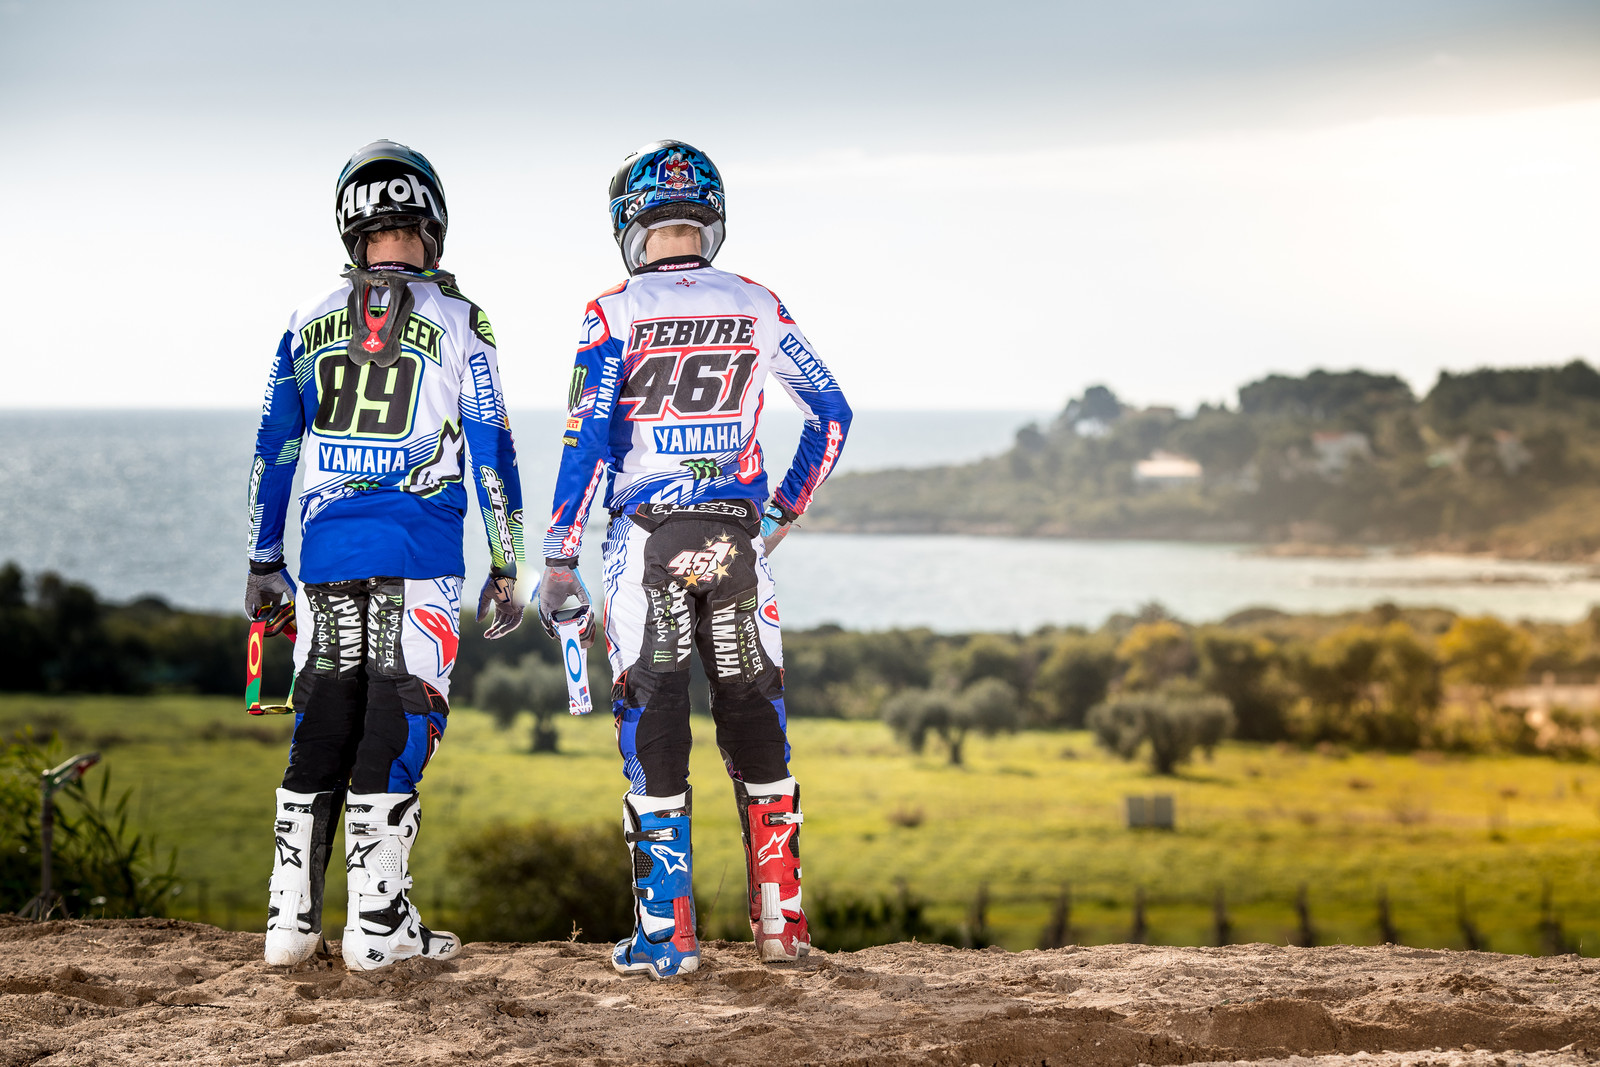 Jeremy Van Horebeek and Romain Febvre - First Look: 2017 Monster Energy & Wilvo Yamaha MXGP Teams - Motocross Pictures - Vital MX